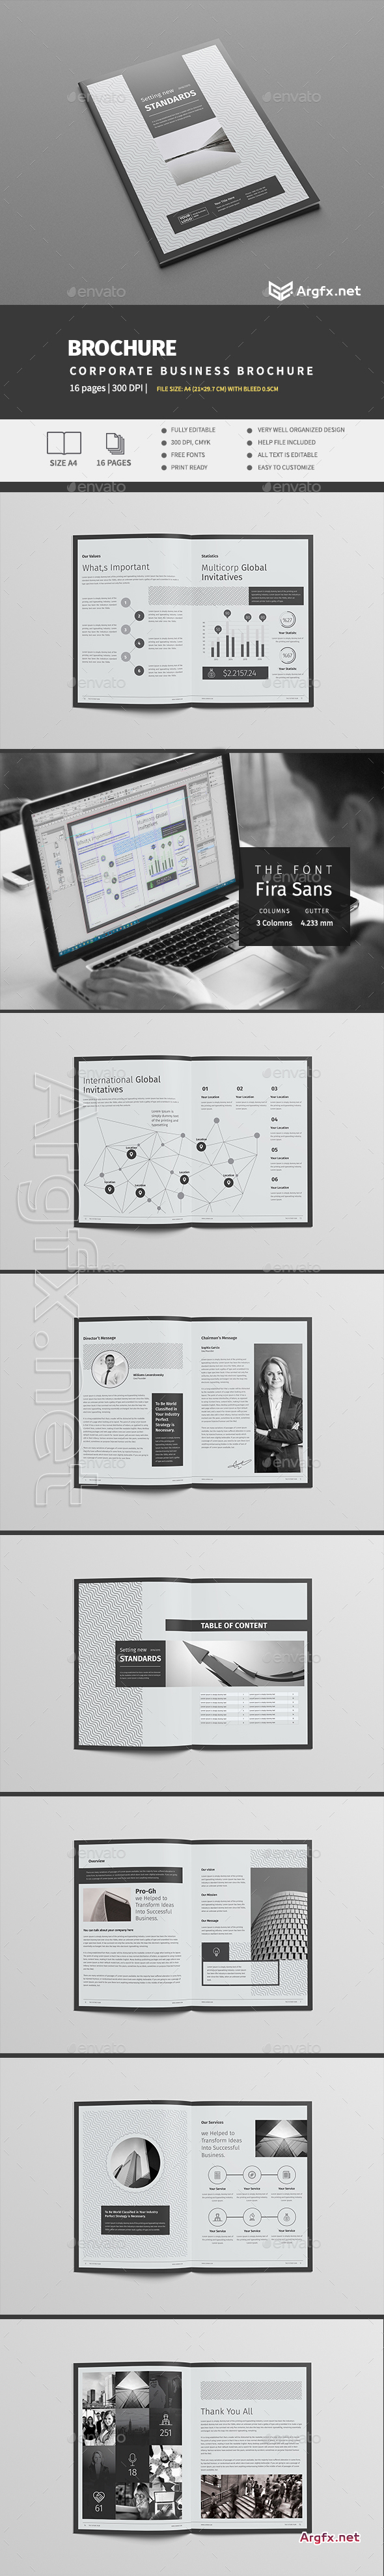 Multipurpose Brochure Template 16 Pages 15981025